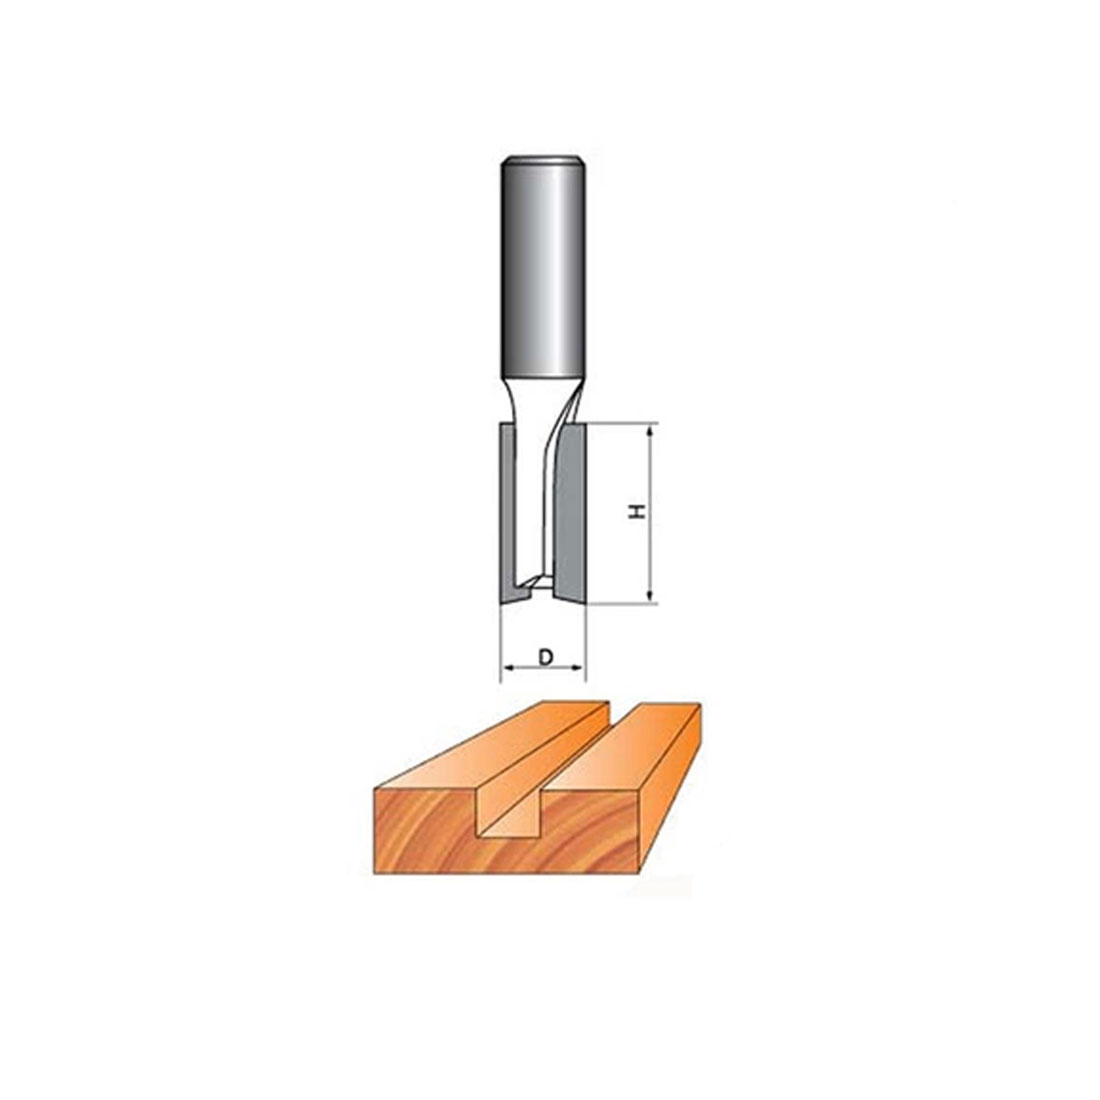 1/2-inch Shank 3/4-inch Cutting Dia 2 Flutes Straight Router Bit Cutter - image 2 of 5